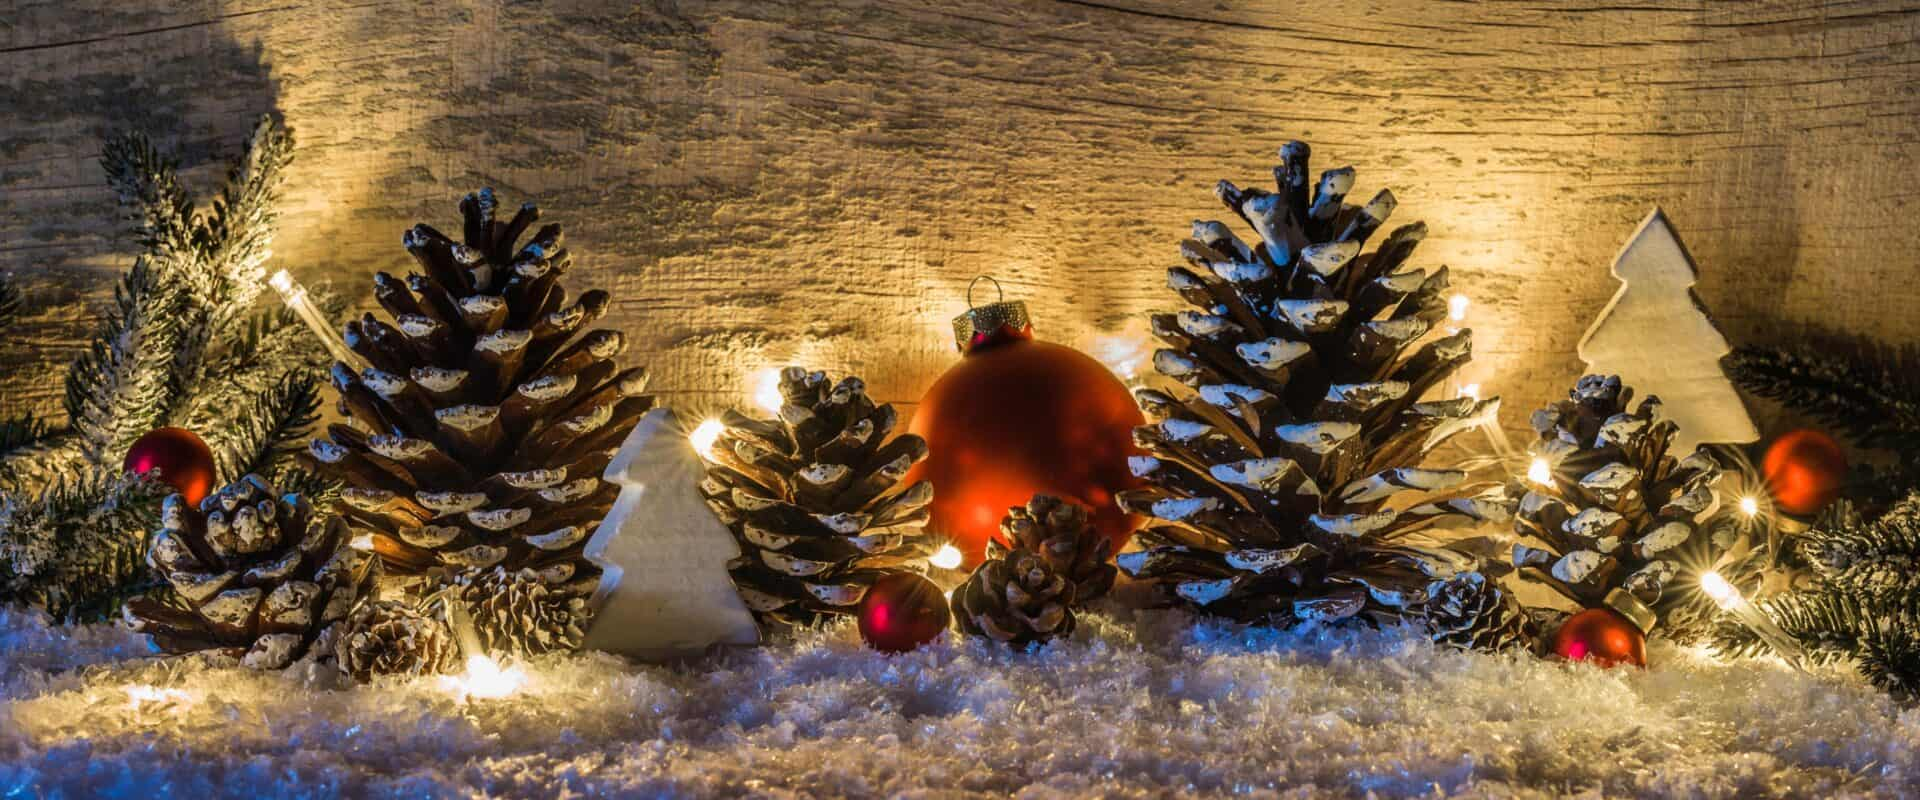 Peace of Mind Blog #1: When the Holidays Are Not So Happy